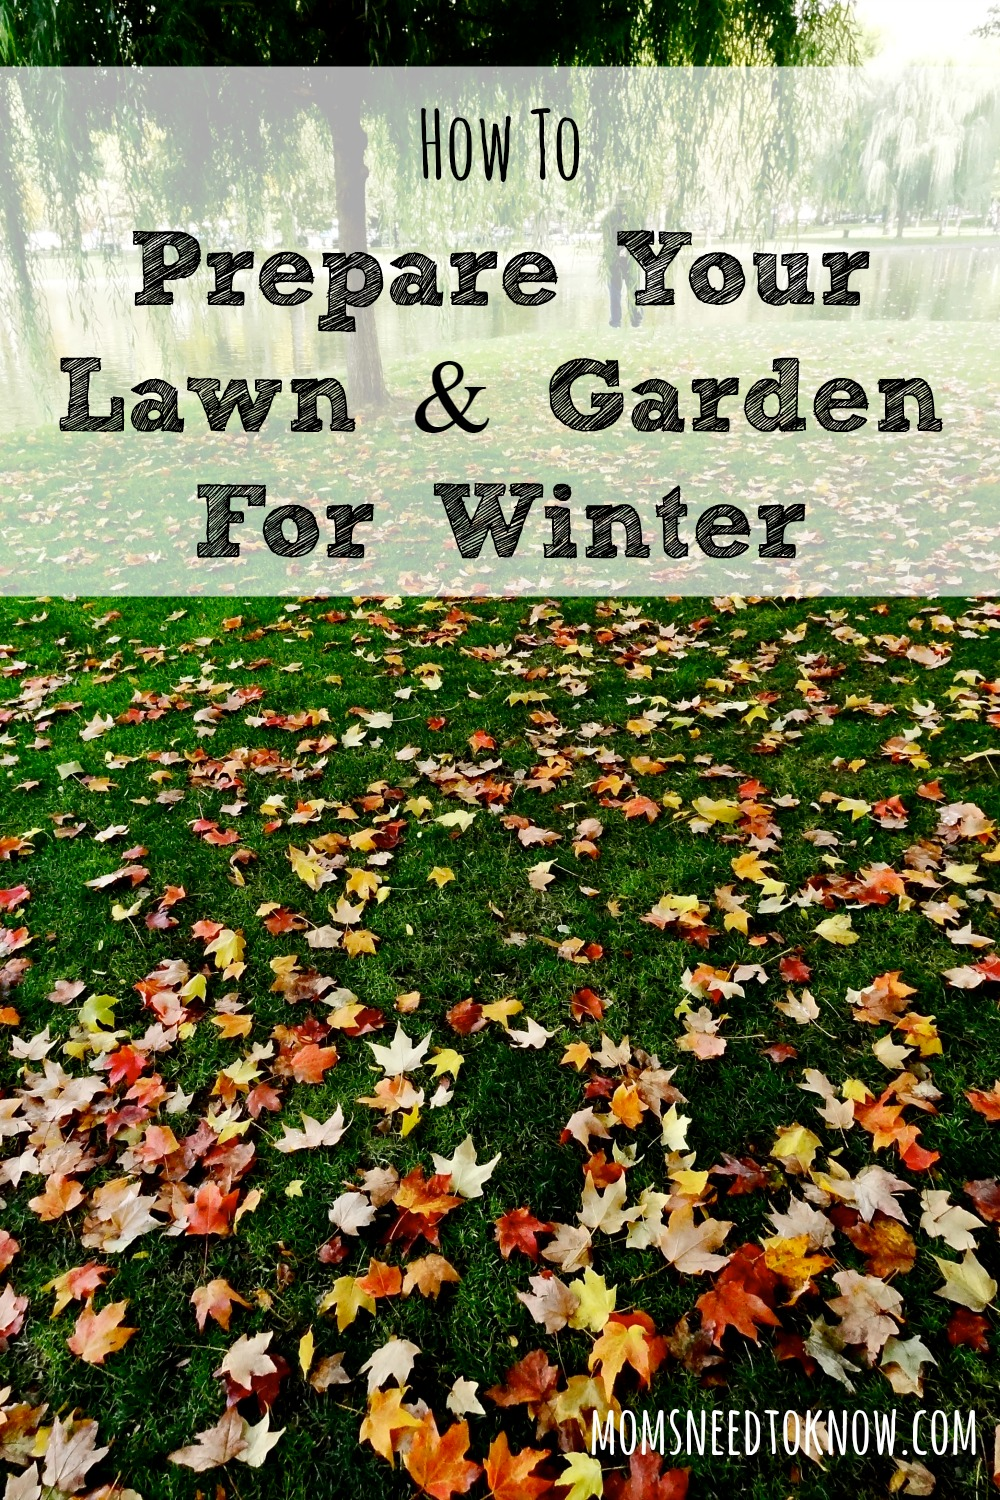 With The Weather Getting Cooler, Itu0027s Time To Prepare Your Lawn For Winter.  Just